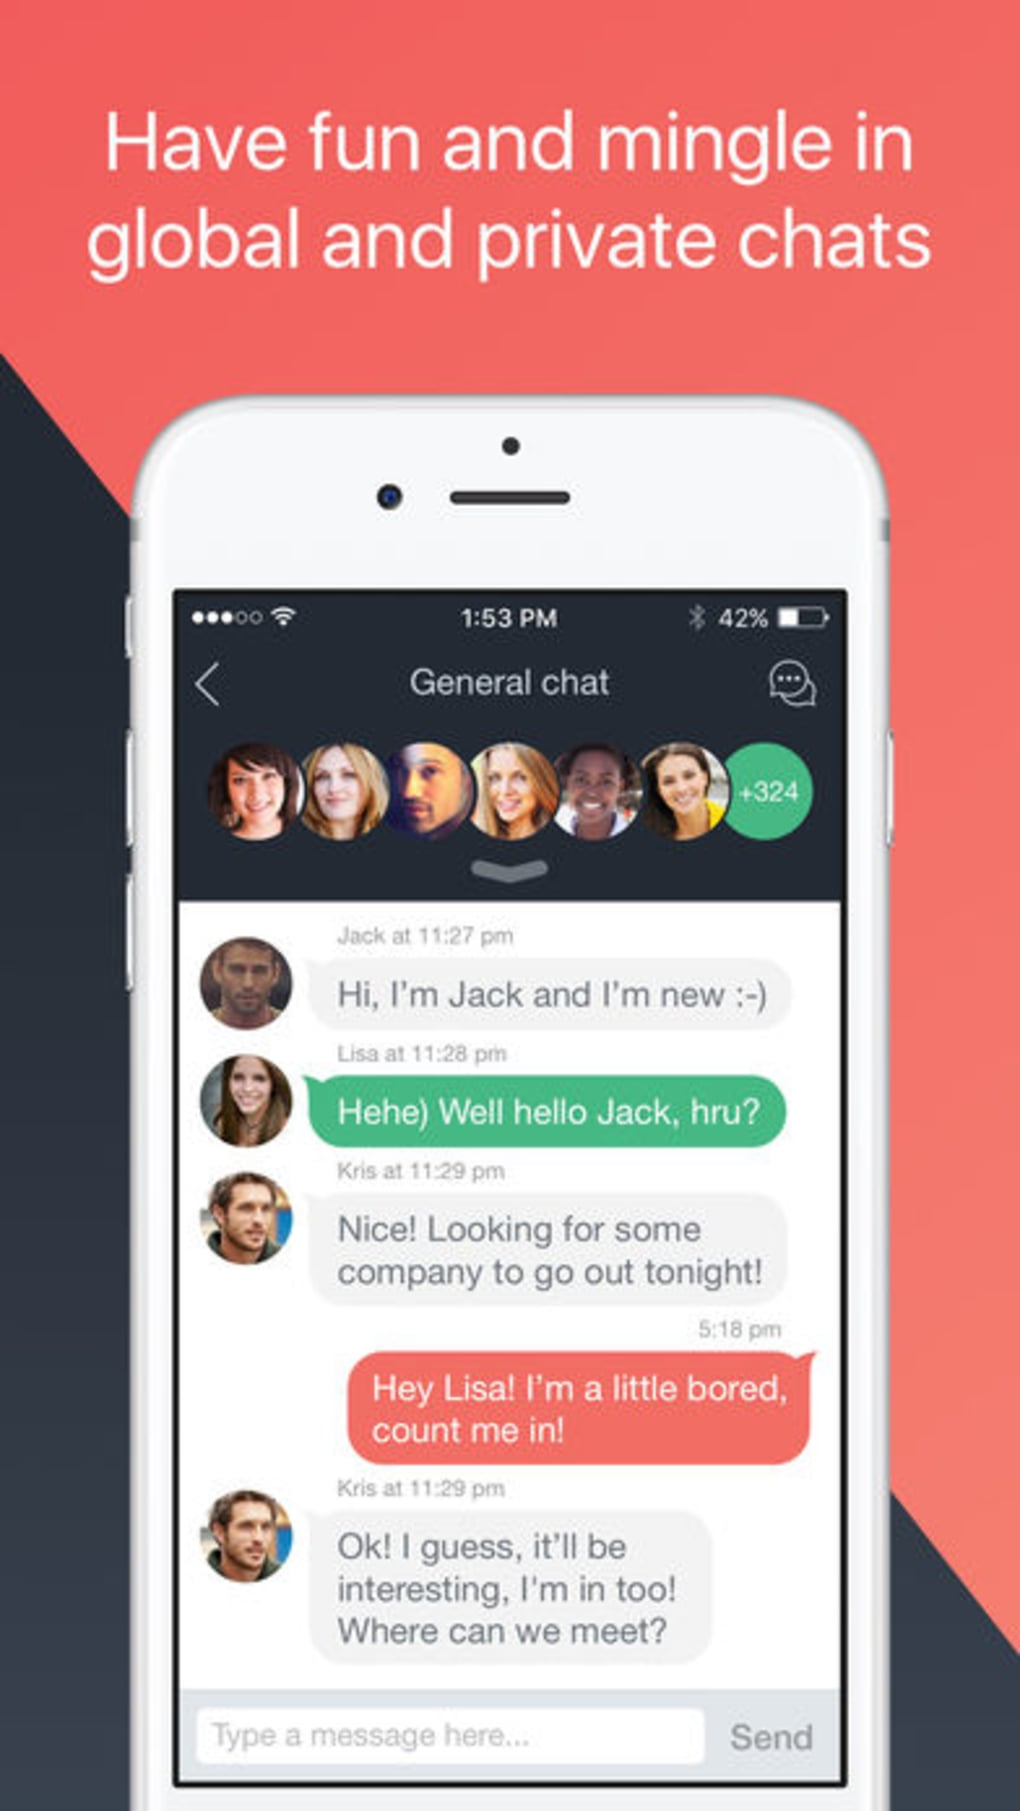 Free local dating apps for iphone